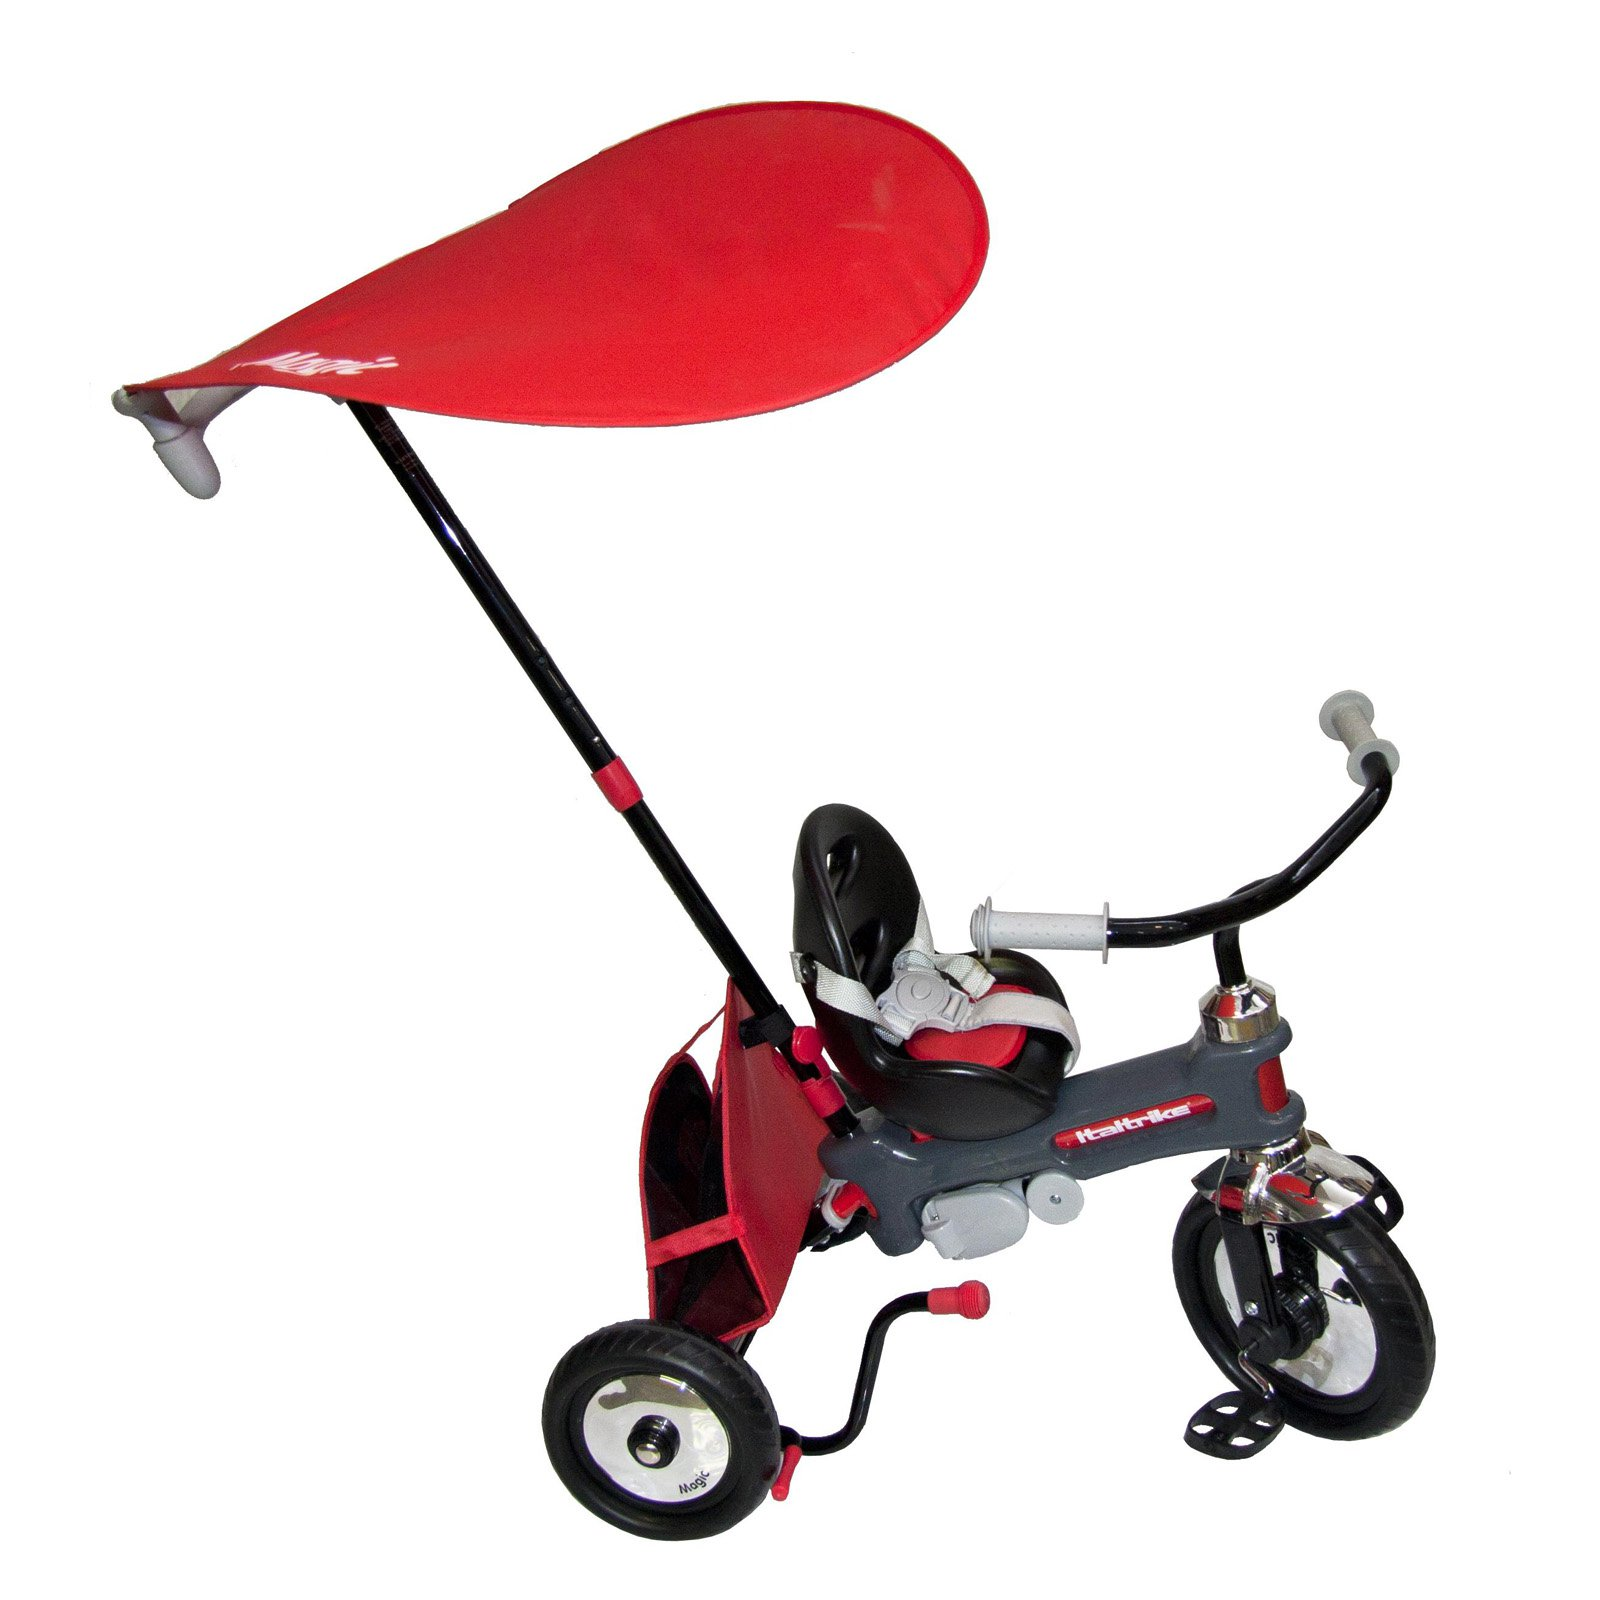 Italtrike Azzurro Tricycle - Red